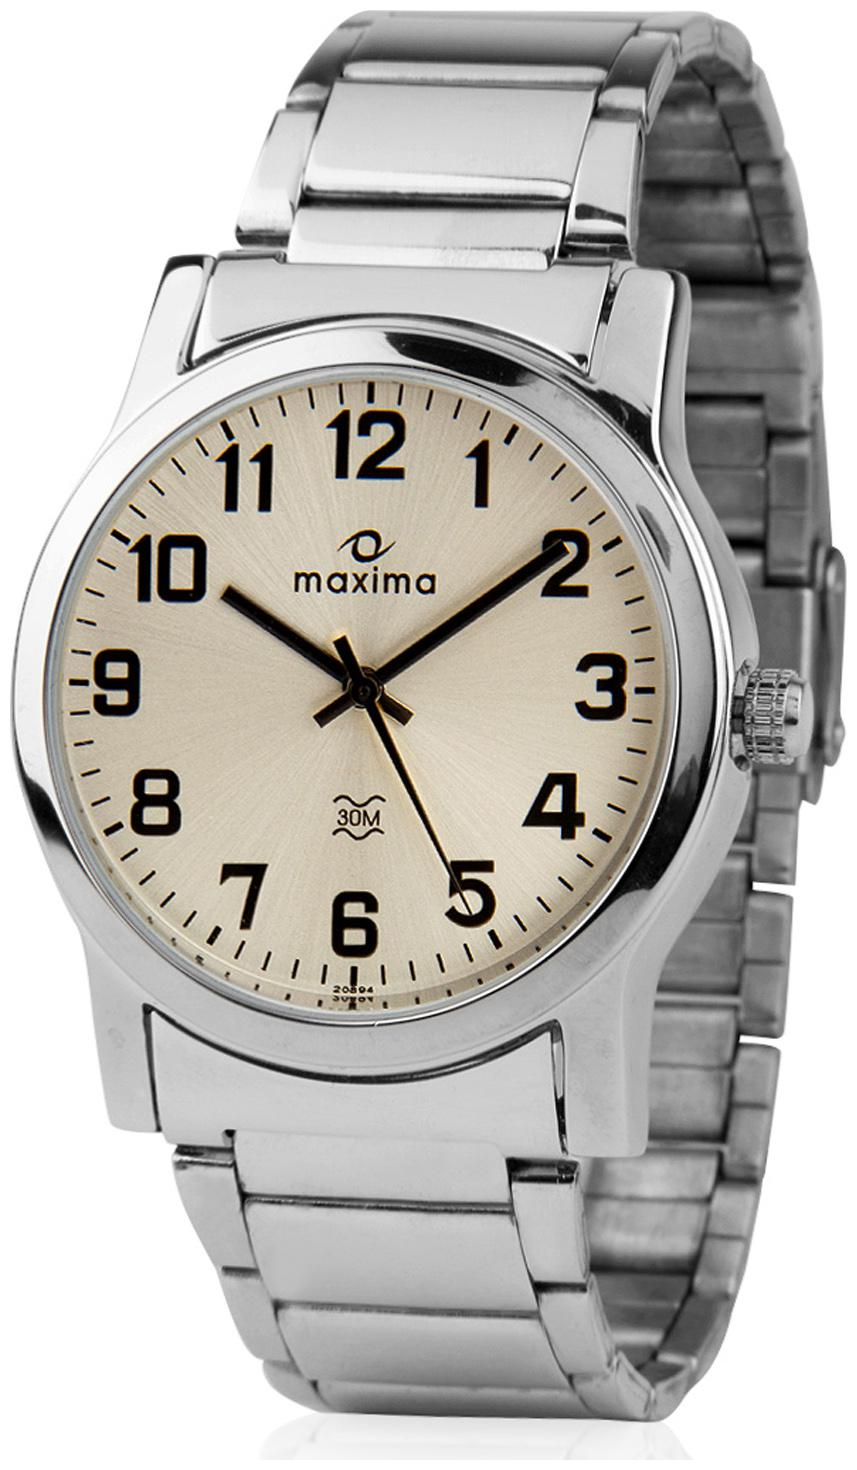 Maxima Attivo Collection 20894Cmgi Men Analog Watch by P A Time Factory